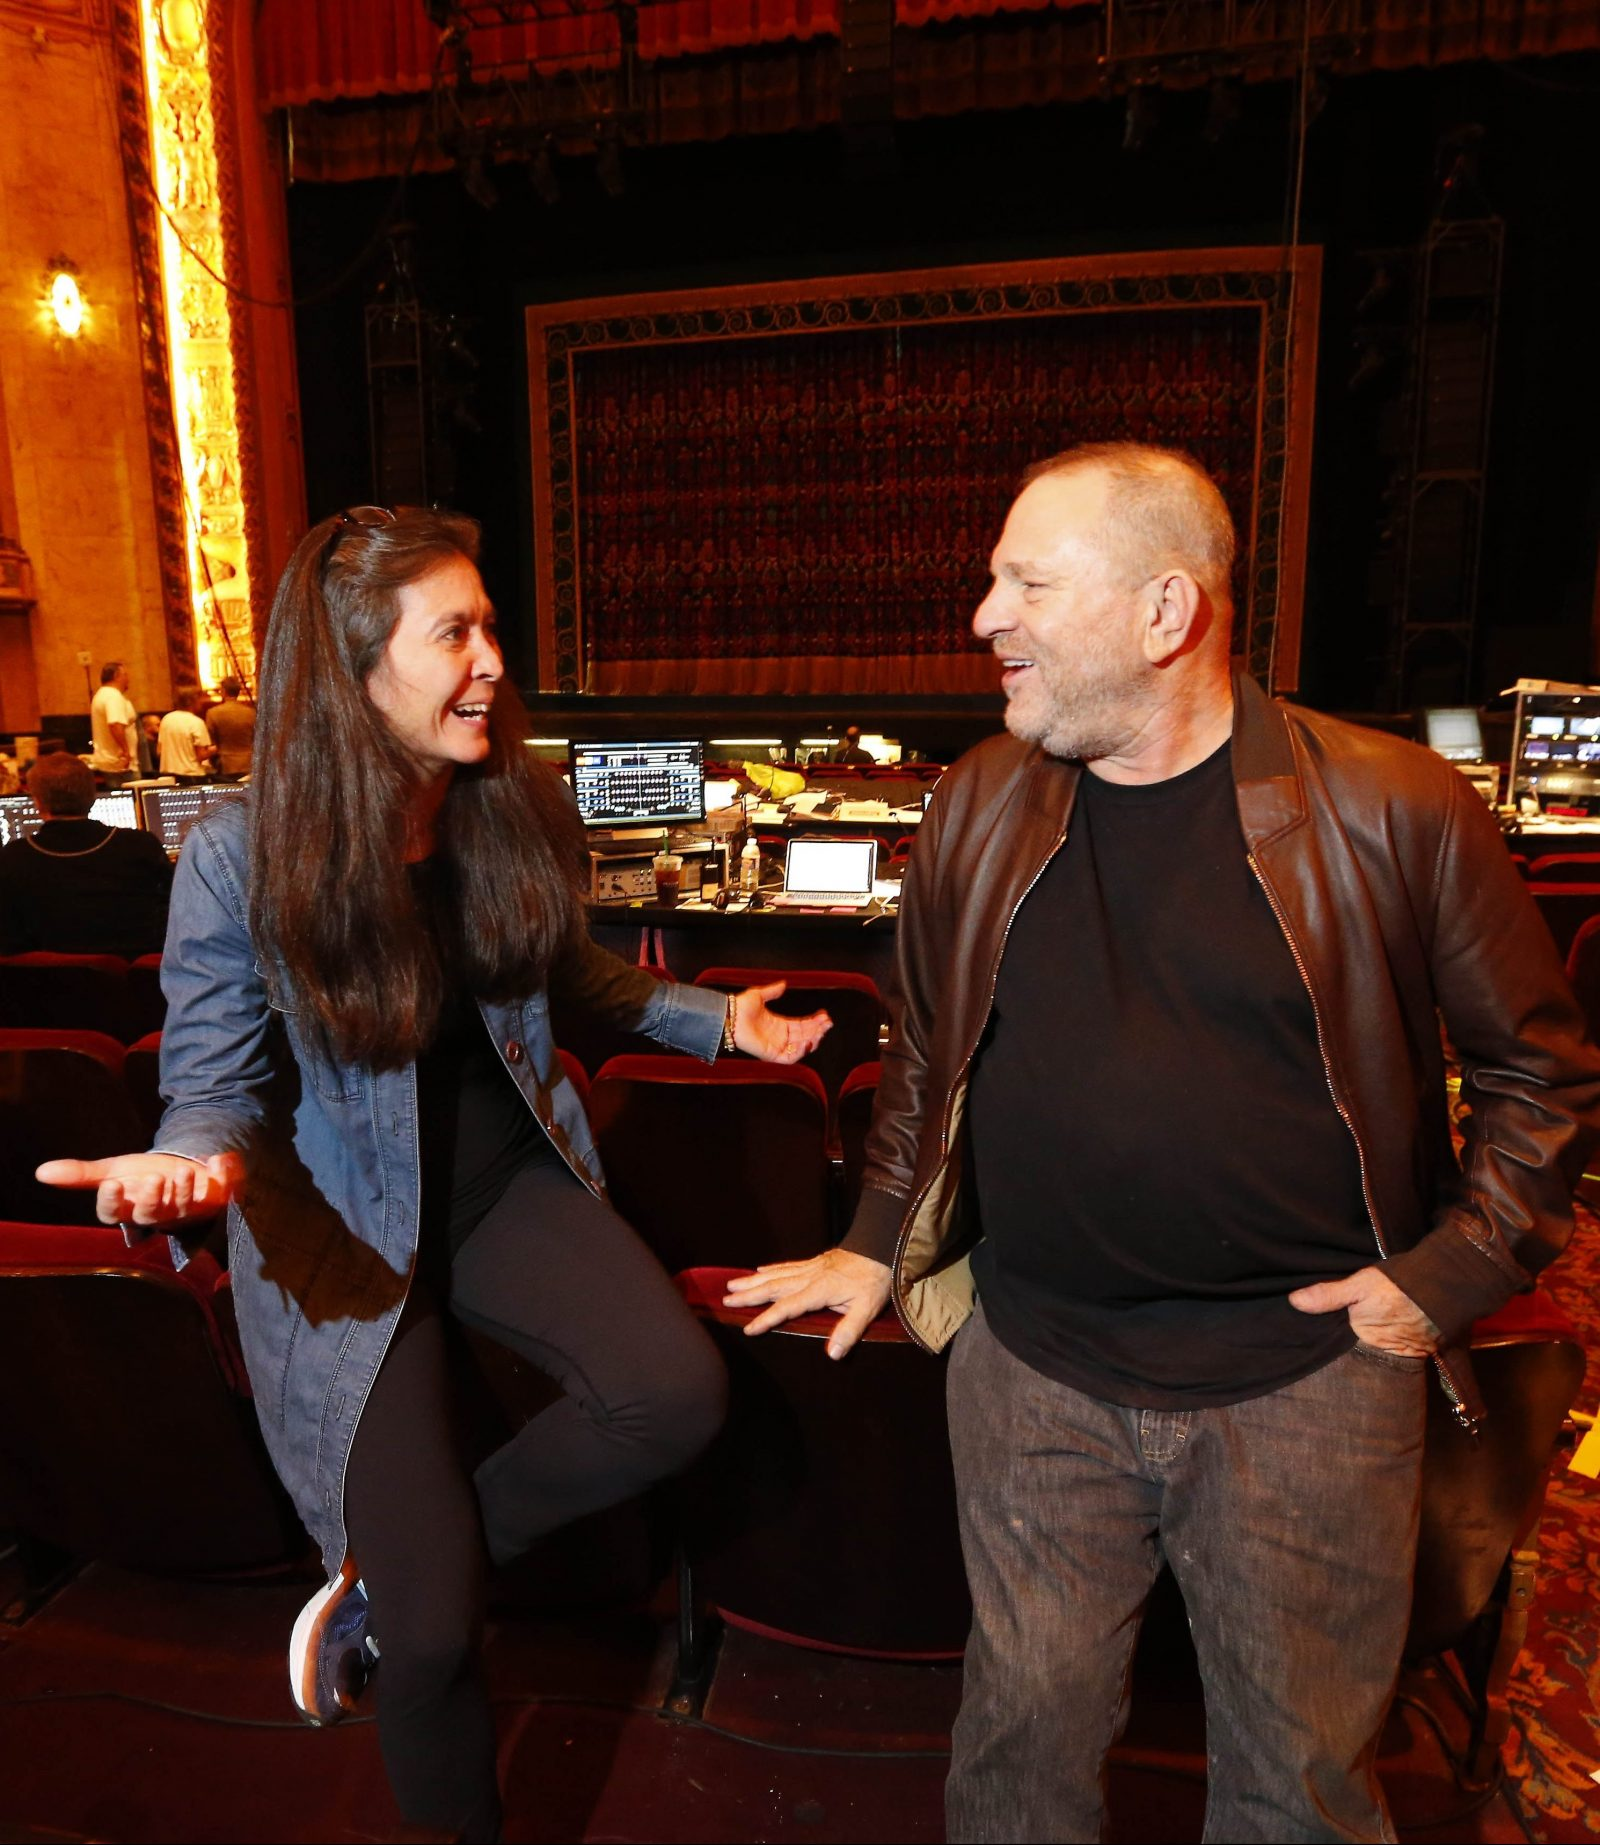 'Finding Neverland' director Diane Paulus and producer Harvey Weinstein talk during the tech load-in at Shea's. (Mark Mulville/The Buffalo News)